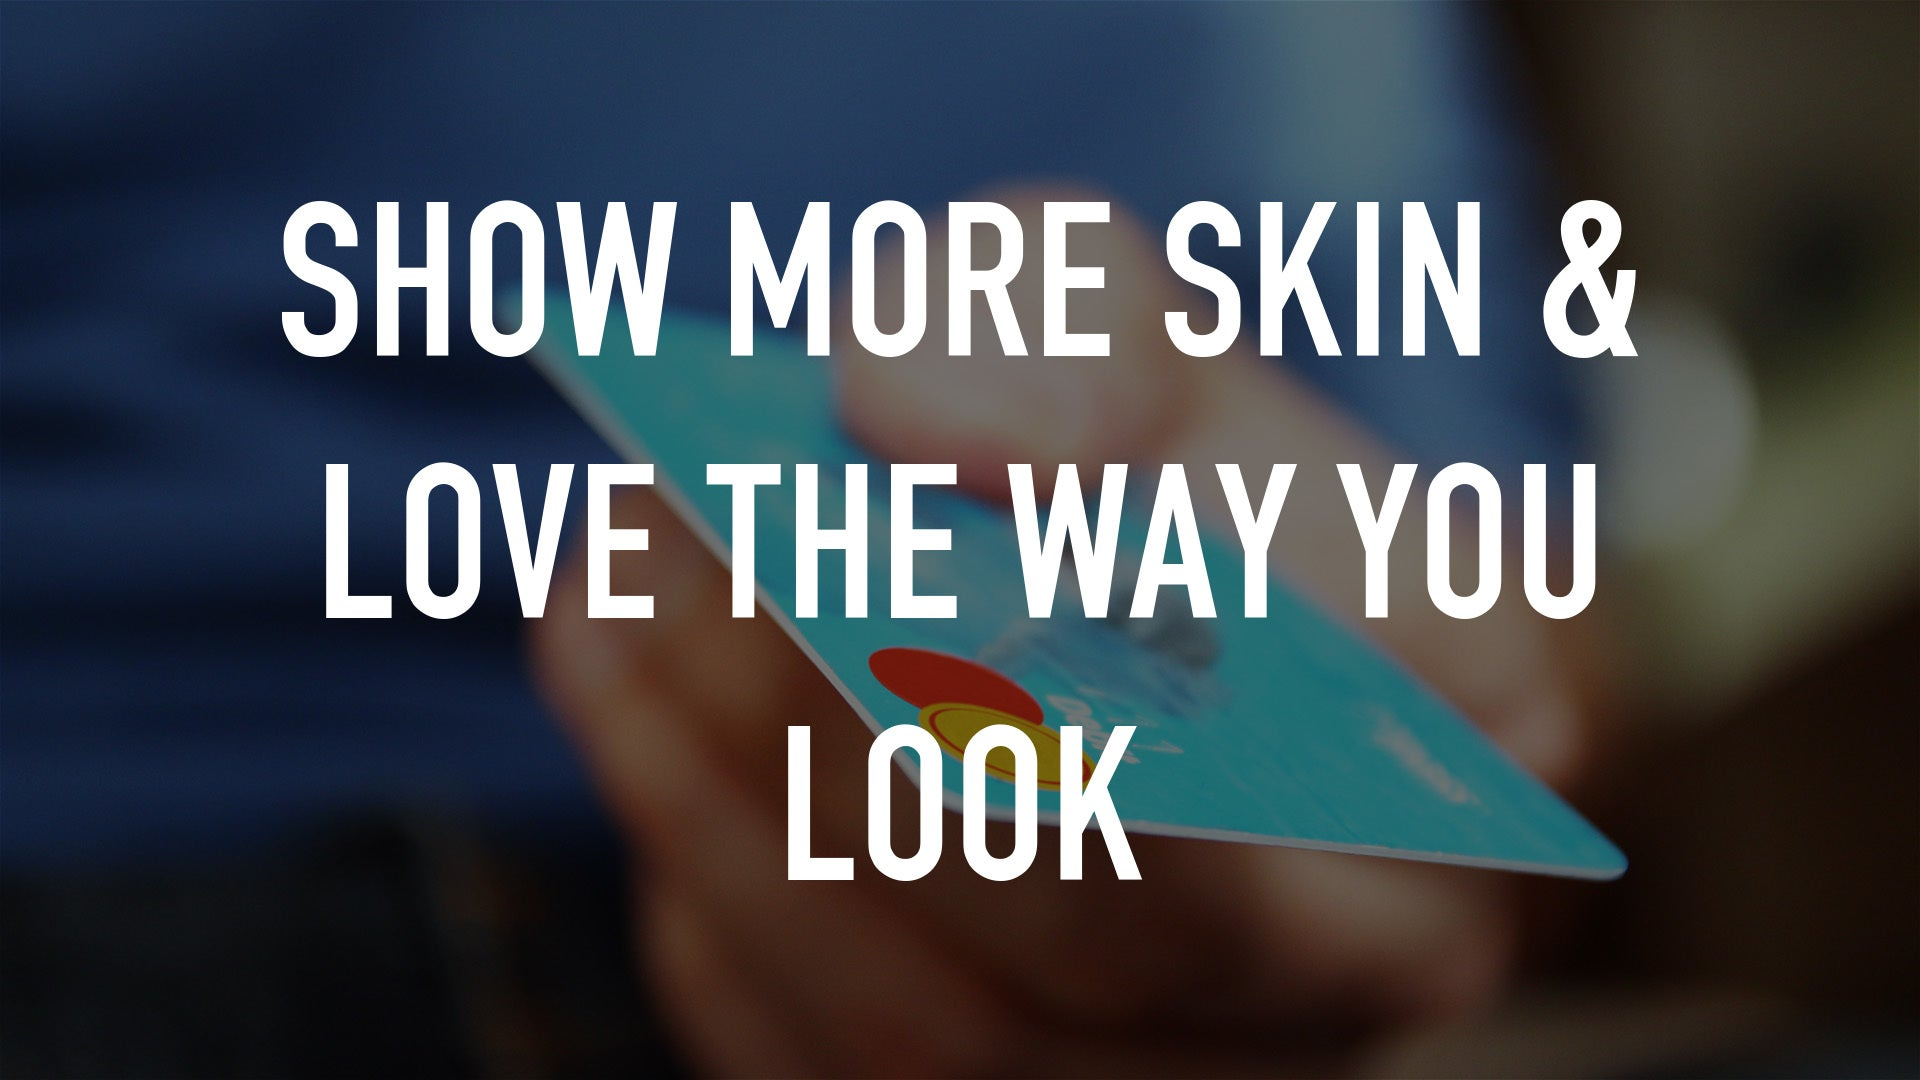 Show More Skin & Love the Way You Look